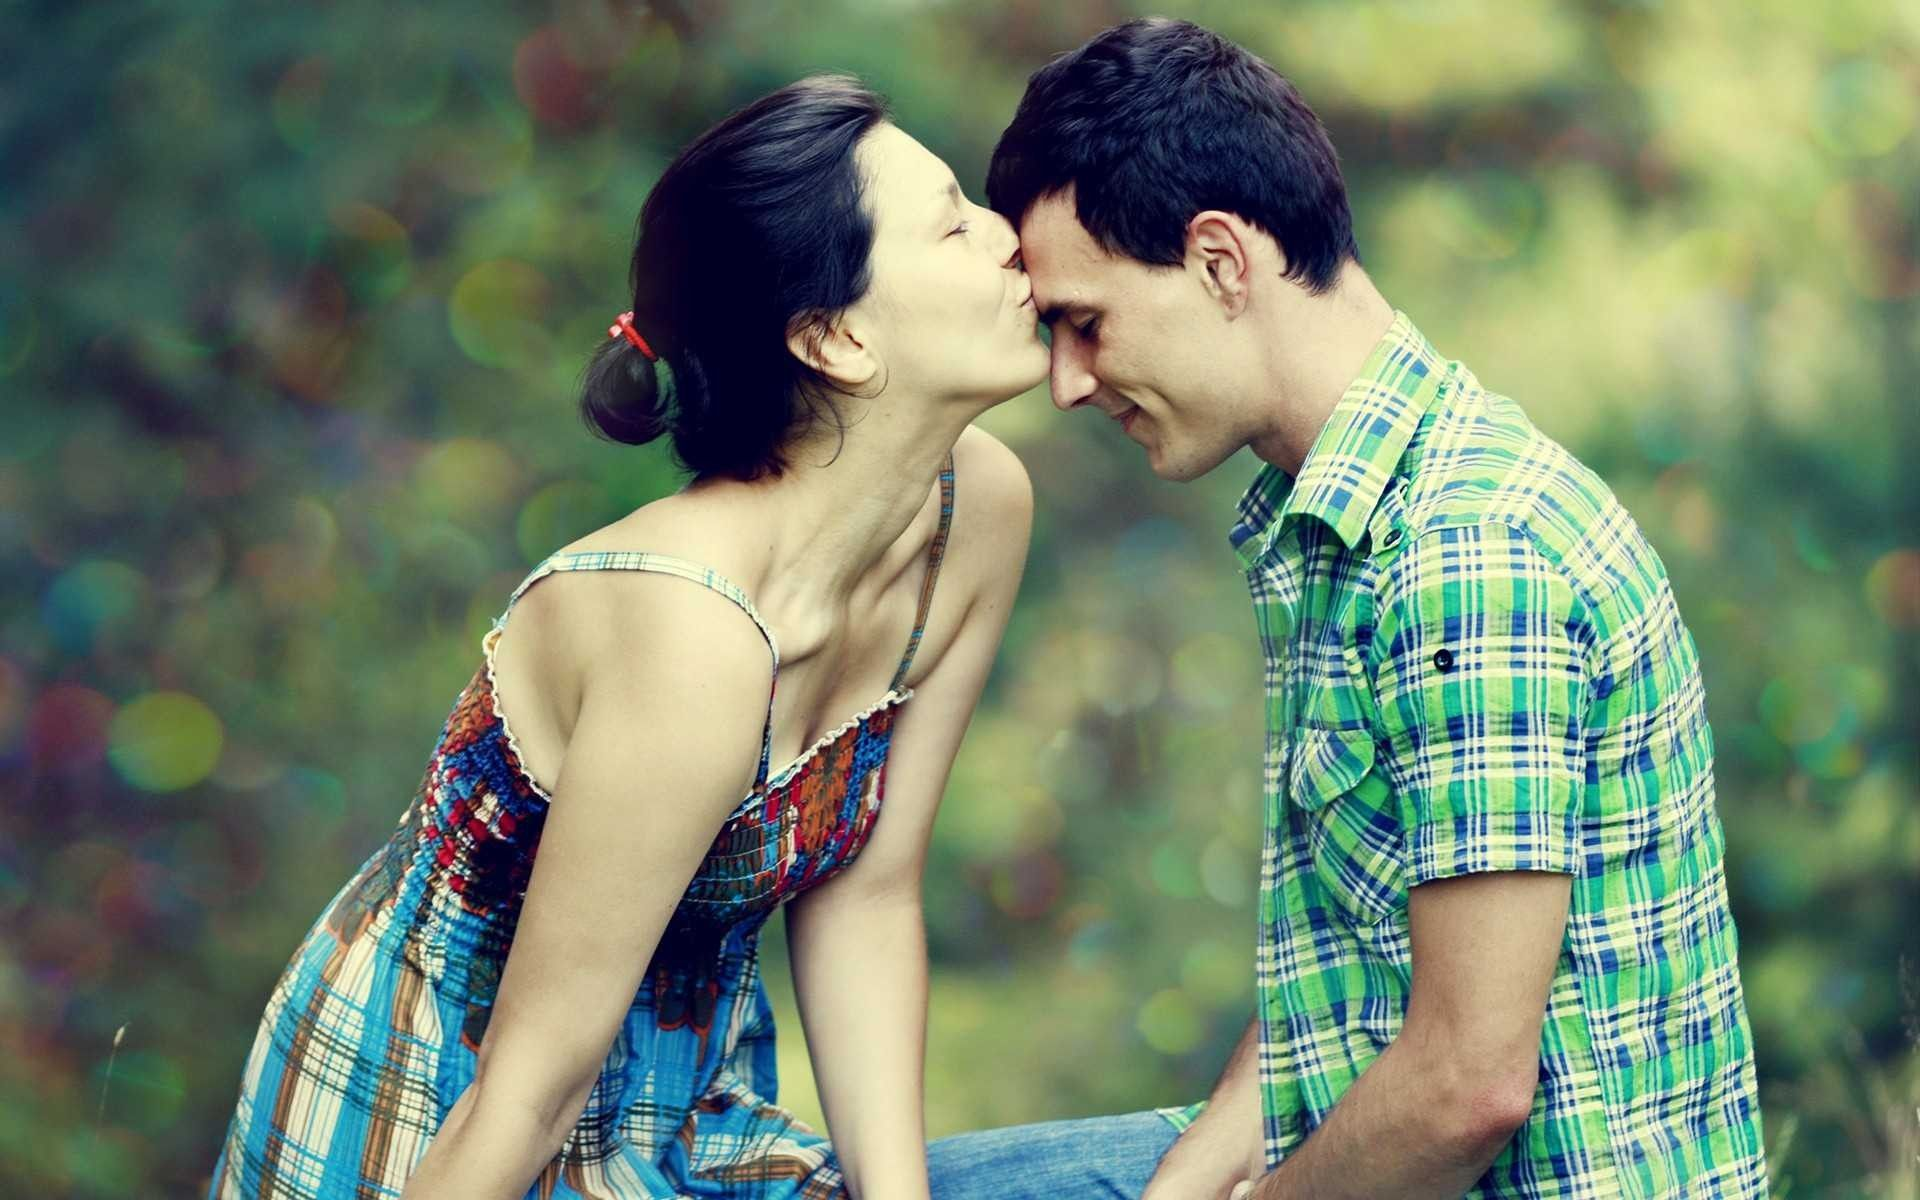 Image of: Lemuy Love Kiss Pic Love Couple Wallpaper Love Wallpaper Kiss Day Photos Happy Scalsys Pin By Entertainment Films Songs Sonianarinder On Couples